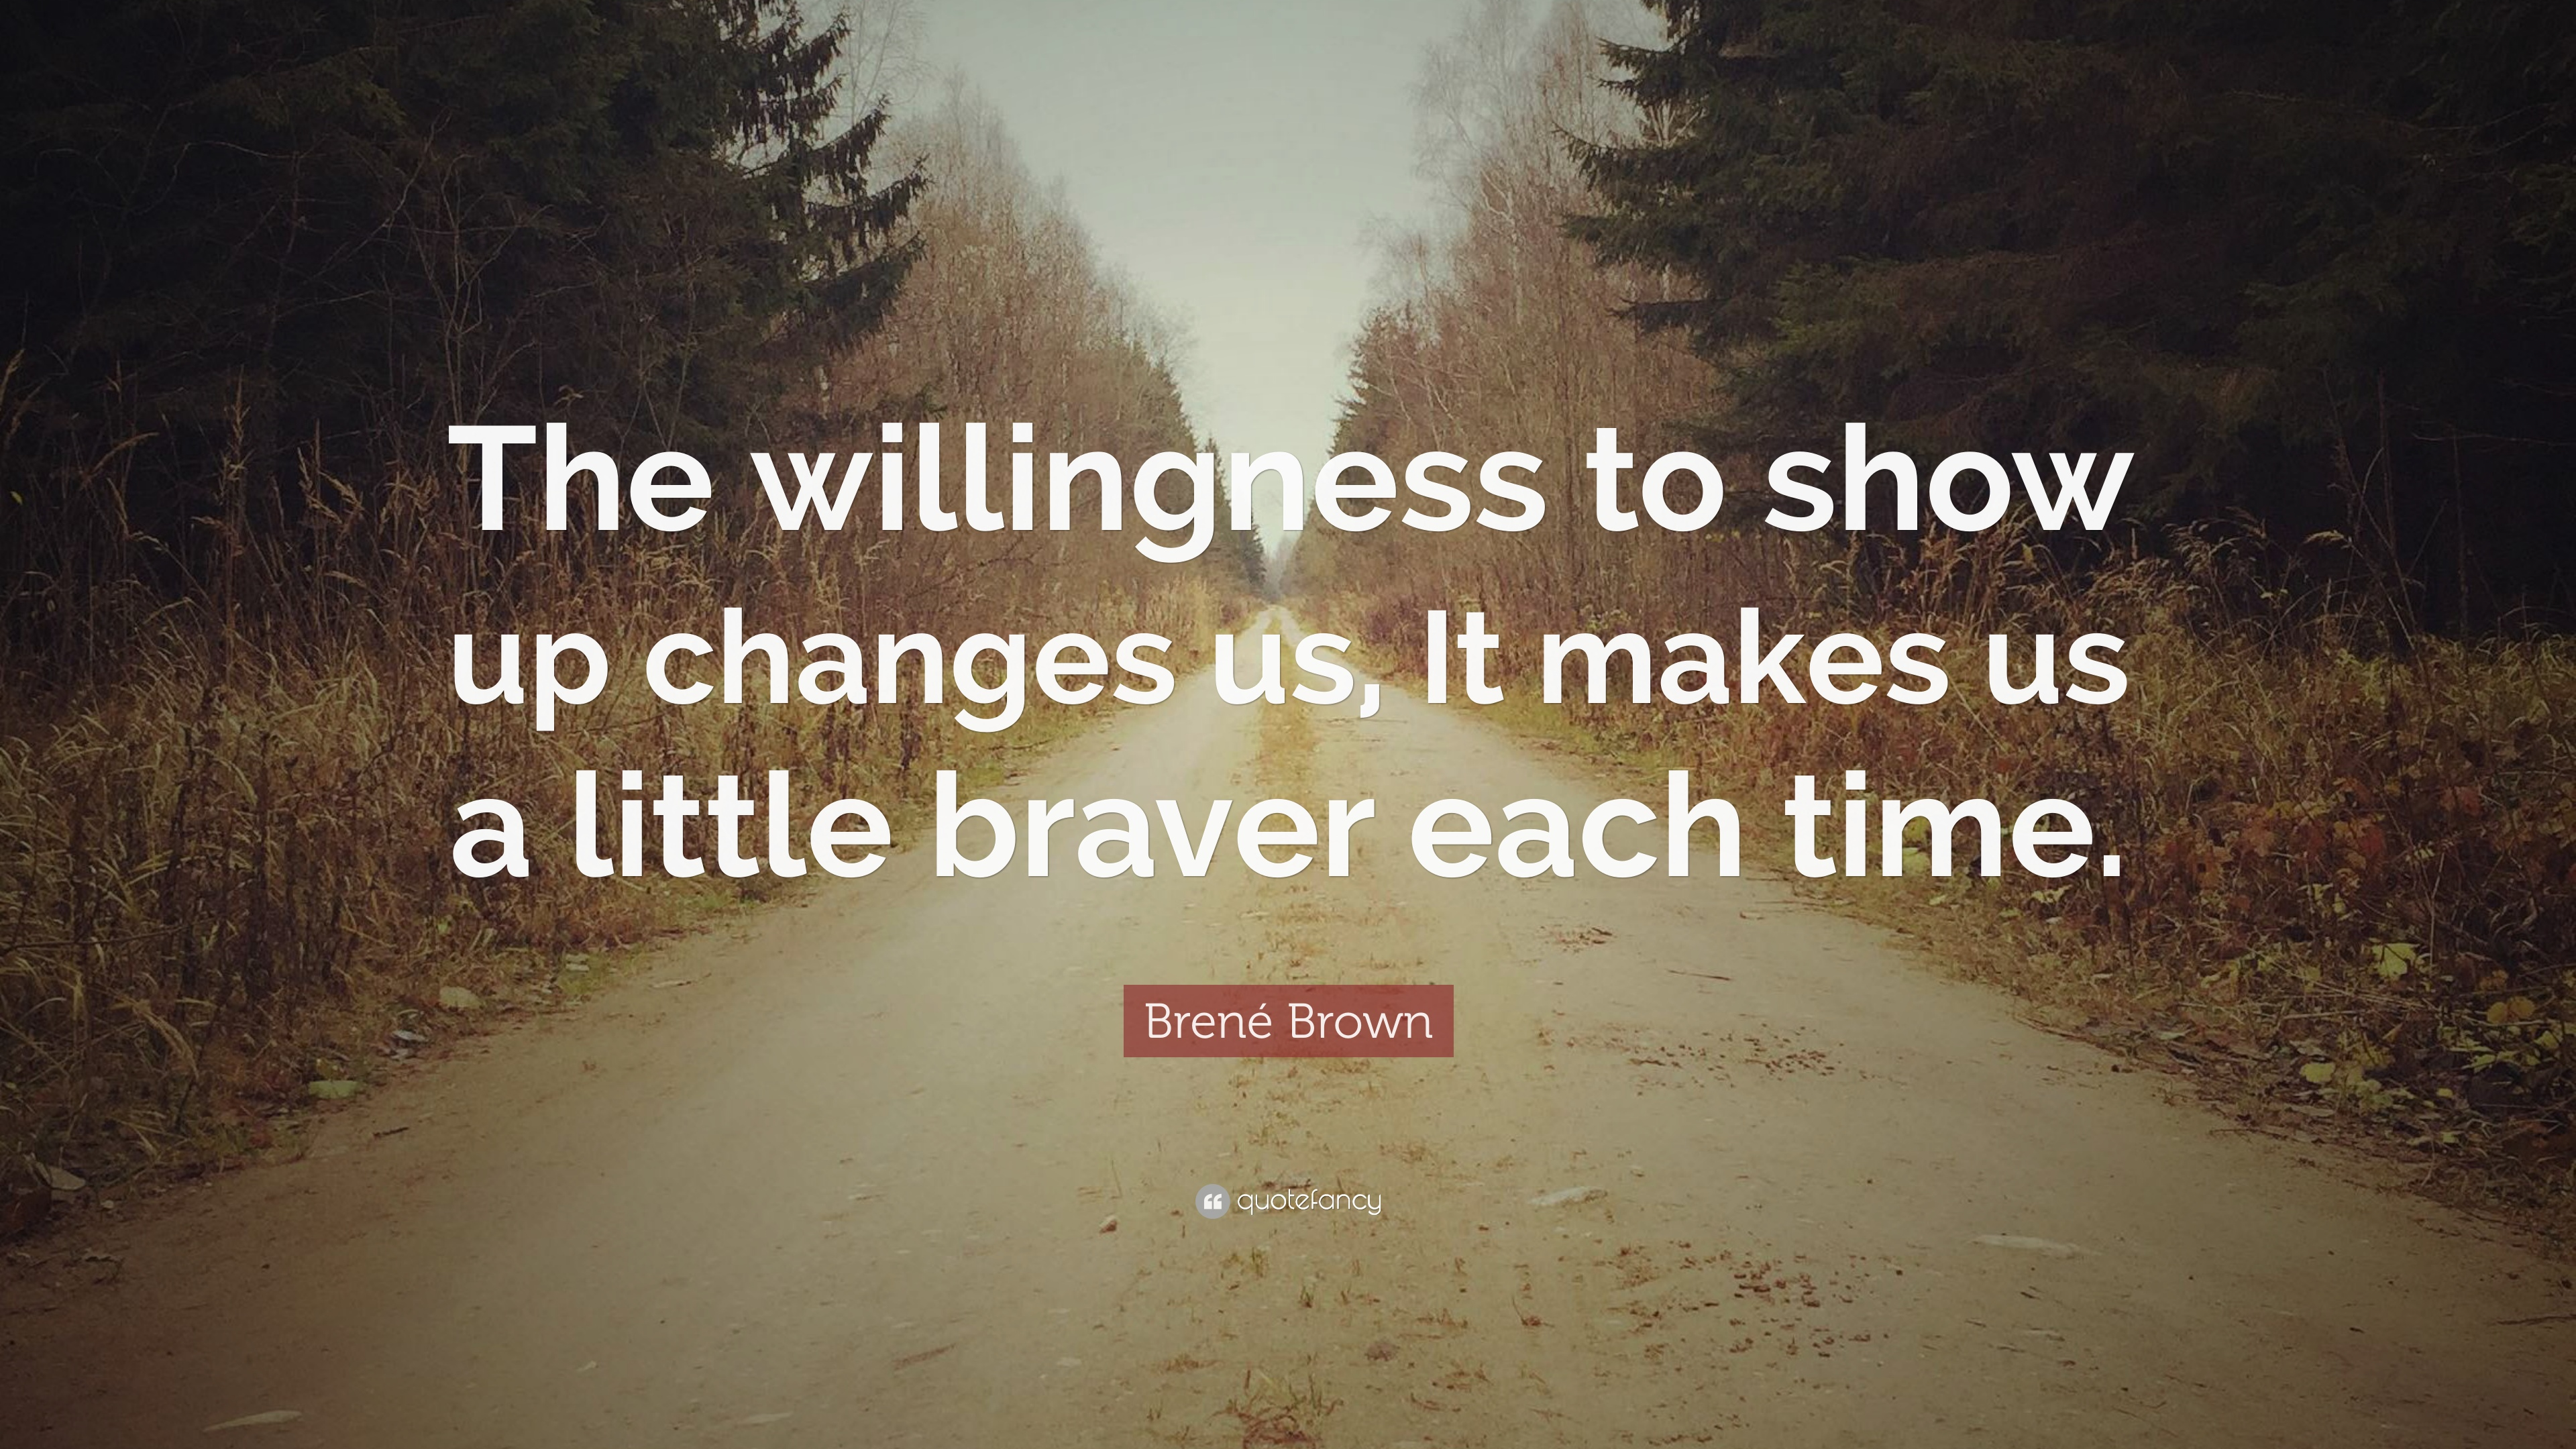 Brené Brown Quote The Willingness To Show Up Changes Us It - Time changes in us